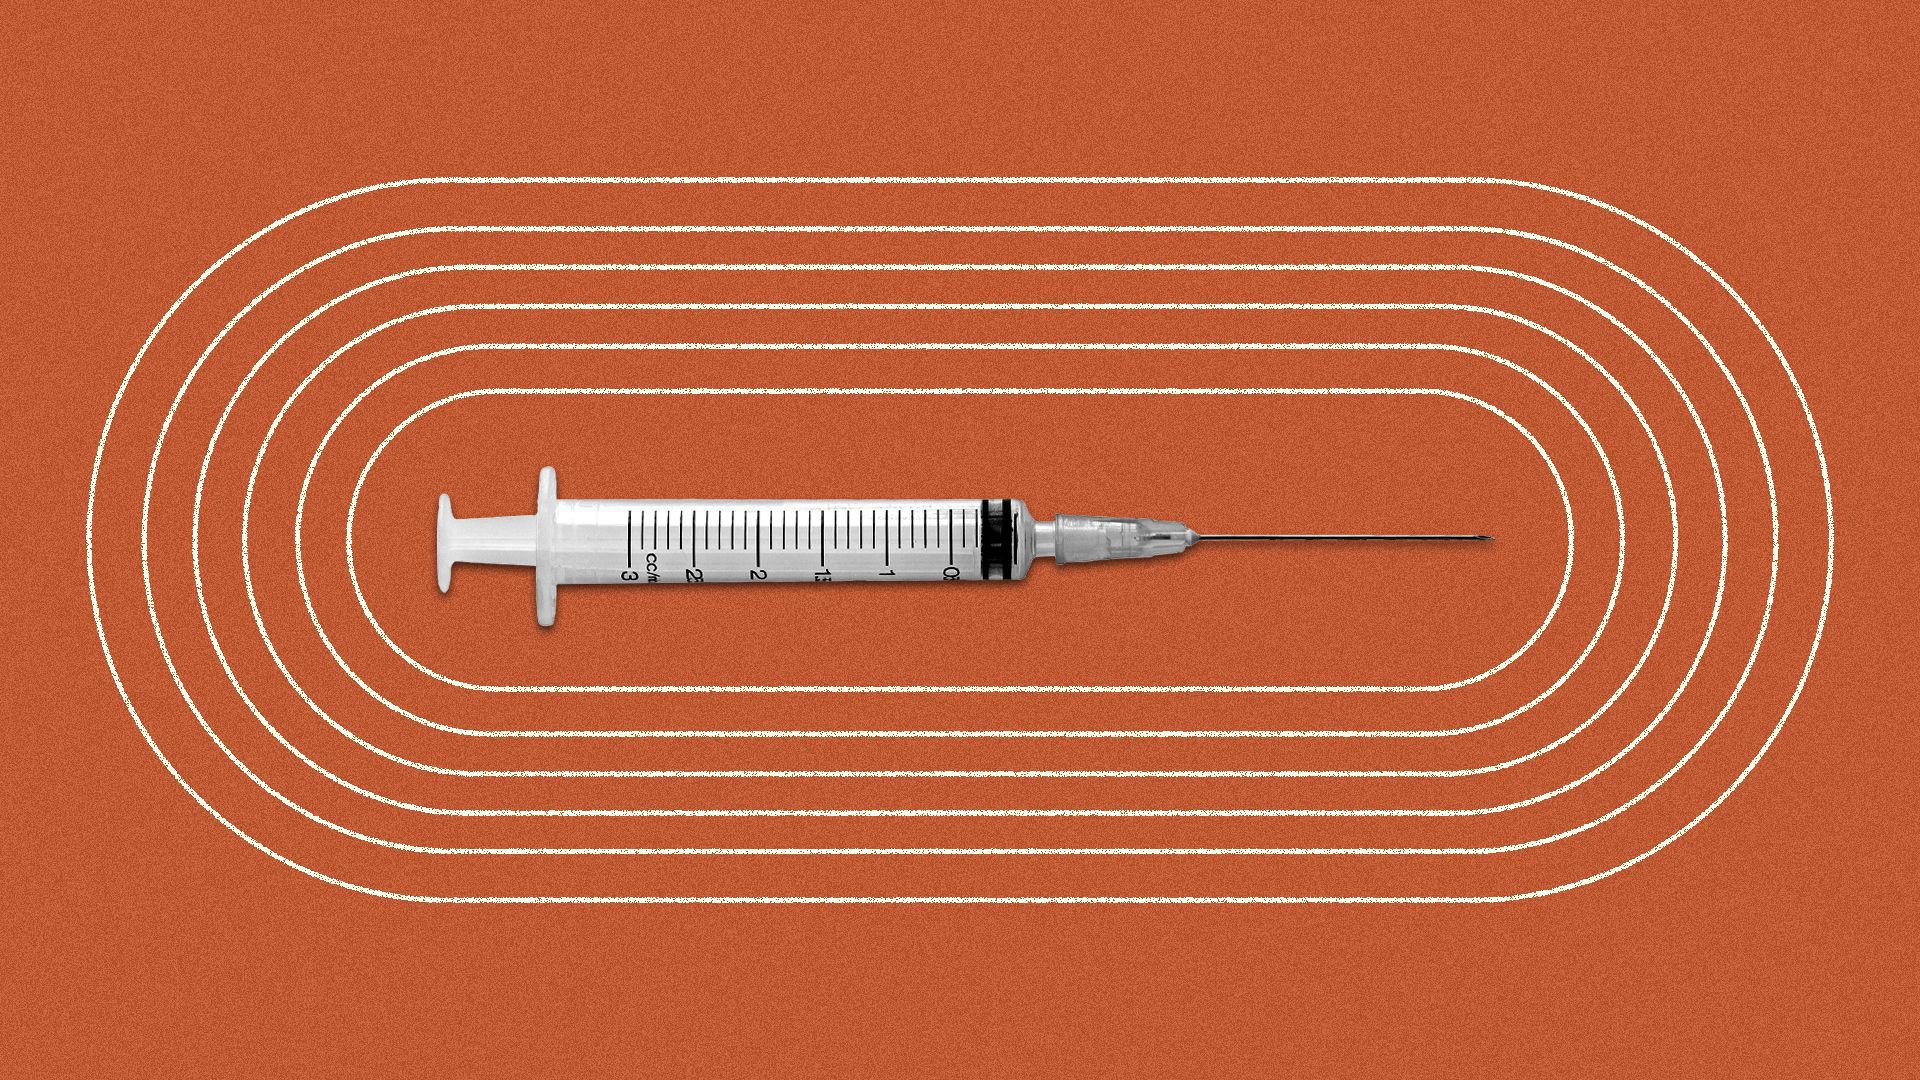 a race track with a vaccine needle in the middle